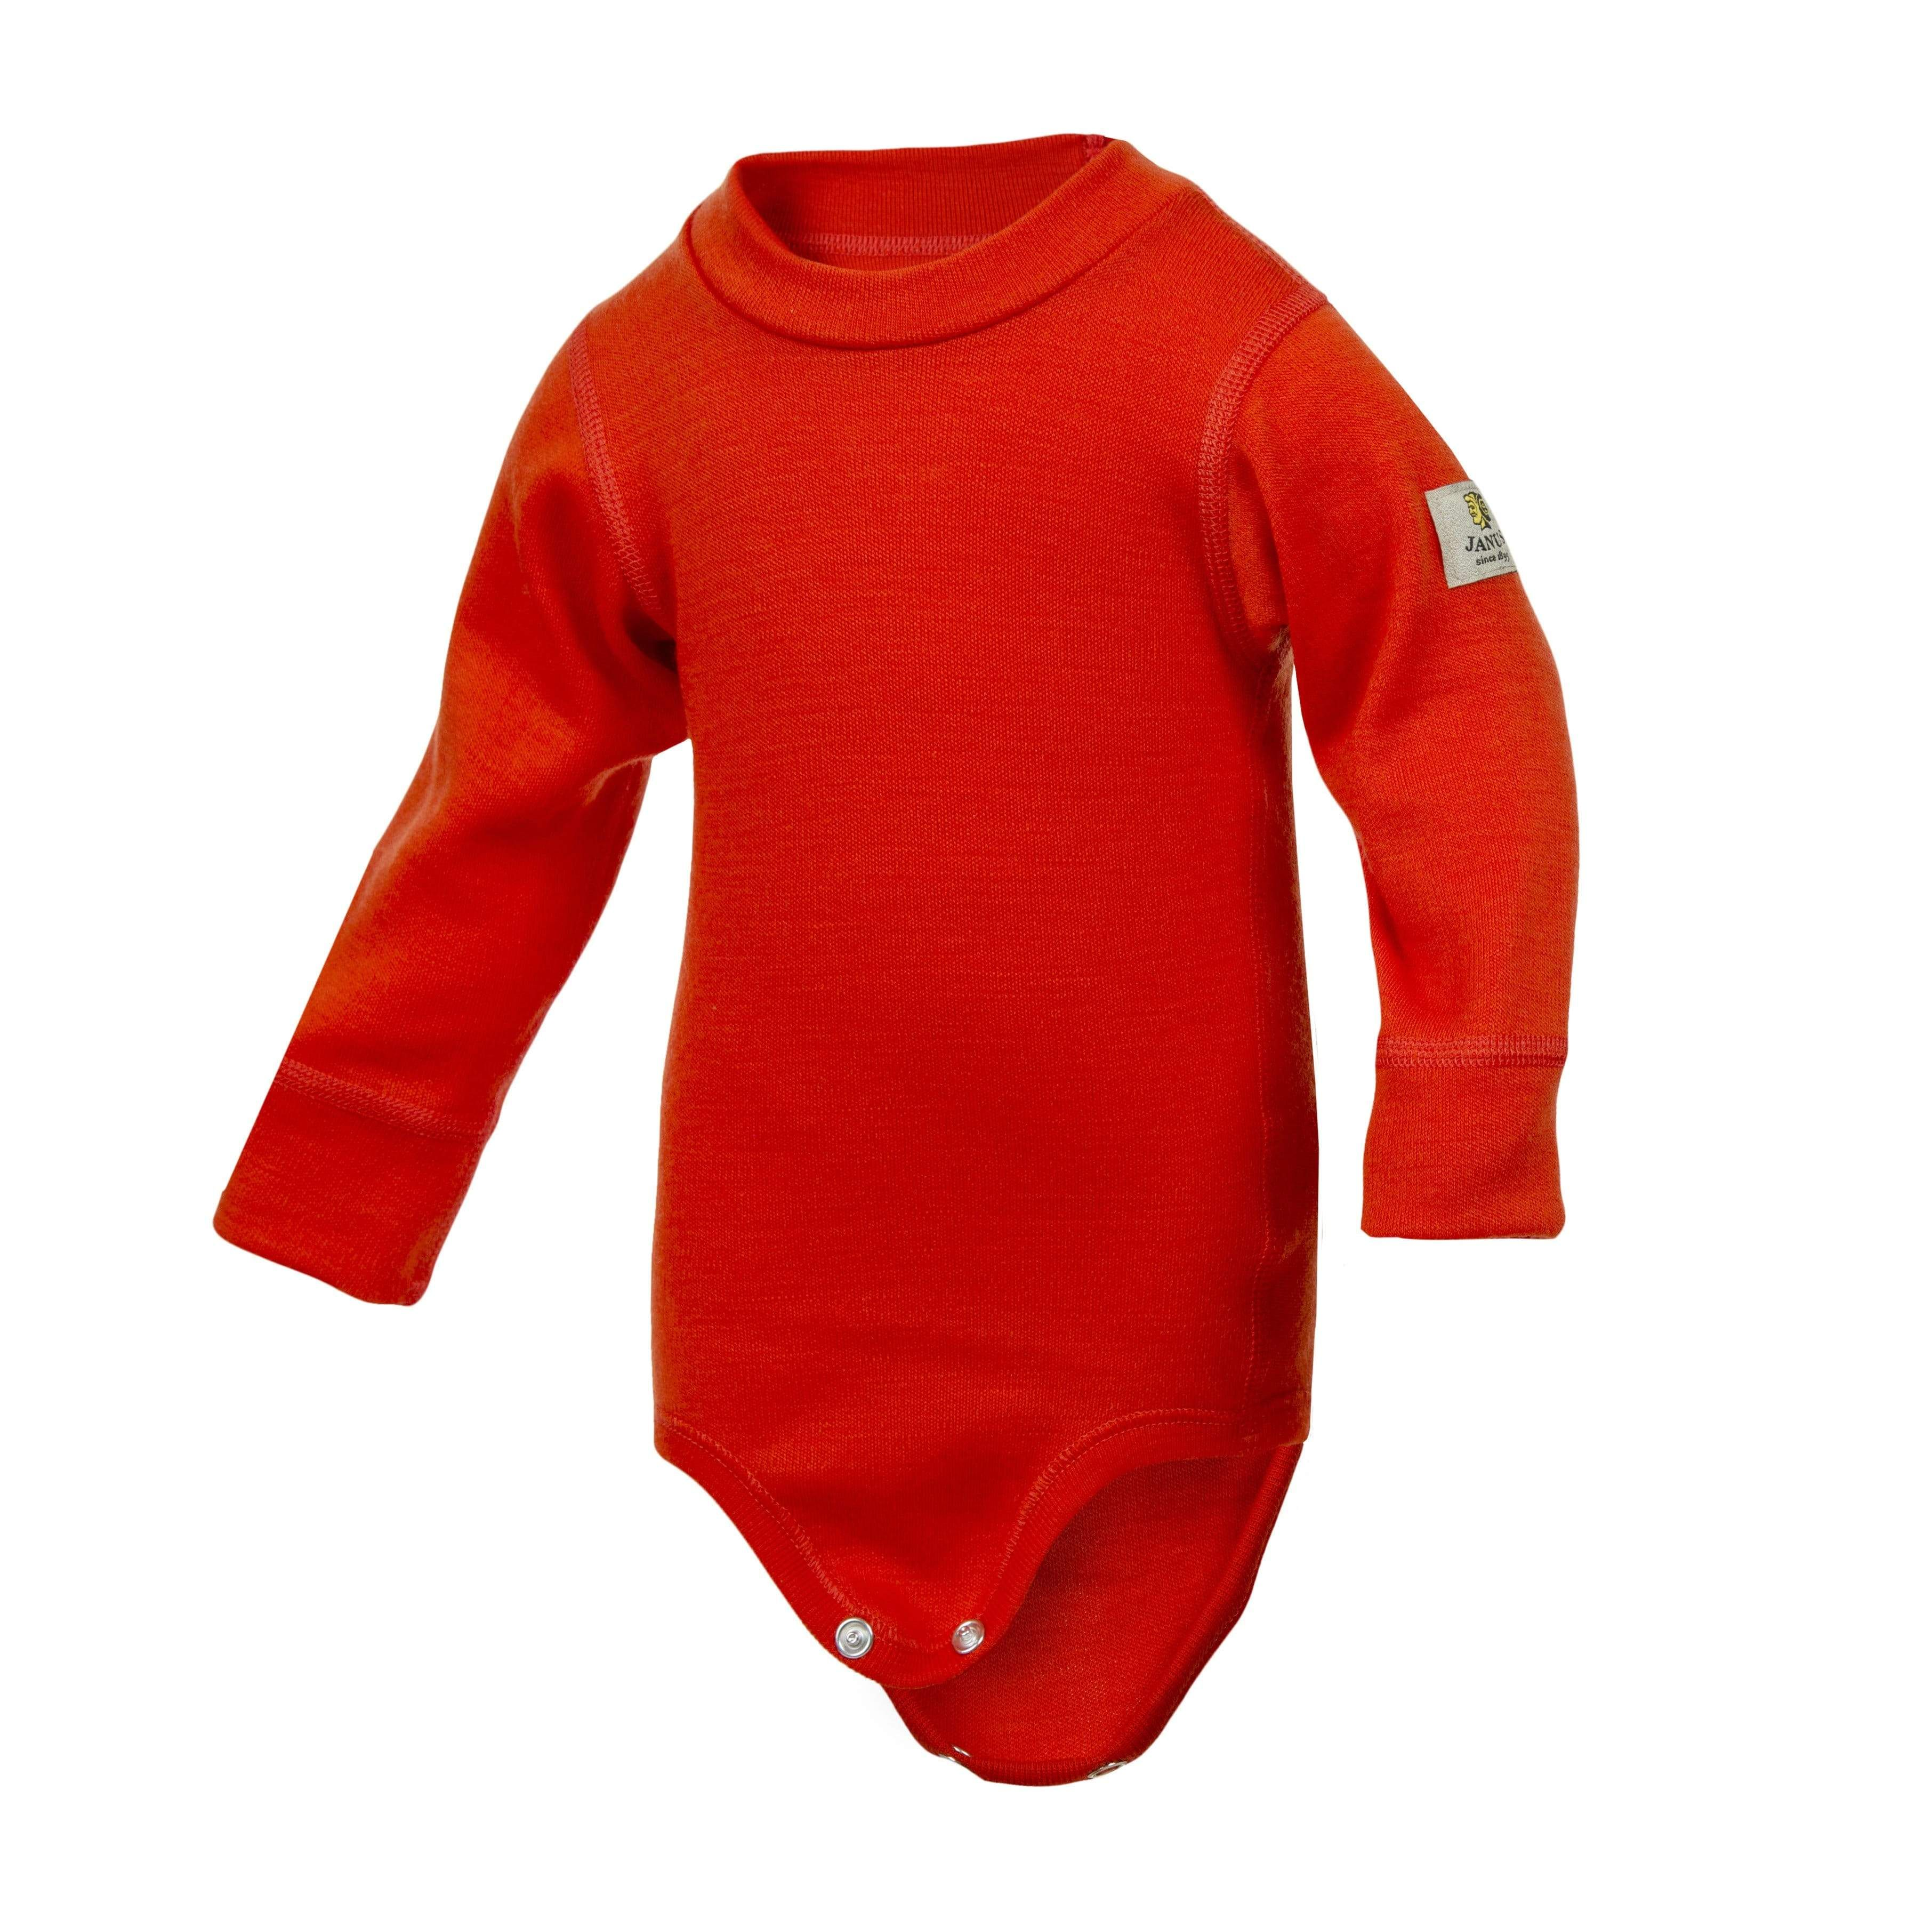 Janus Babywool body of thick, soft interlock knitted 100% merino wool. Flexible neck and snaps at the bottom for easy changing. Composition: 100% merino wool. Weight: 215 g / m2. Oeko-Tex approved. We recommend gentle washing and line drying your woolies for longest life.